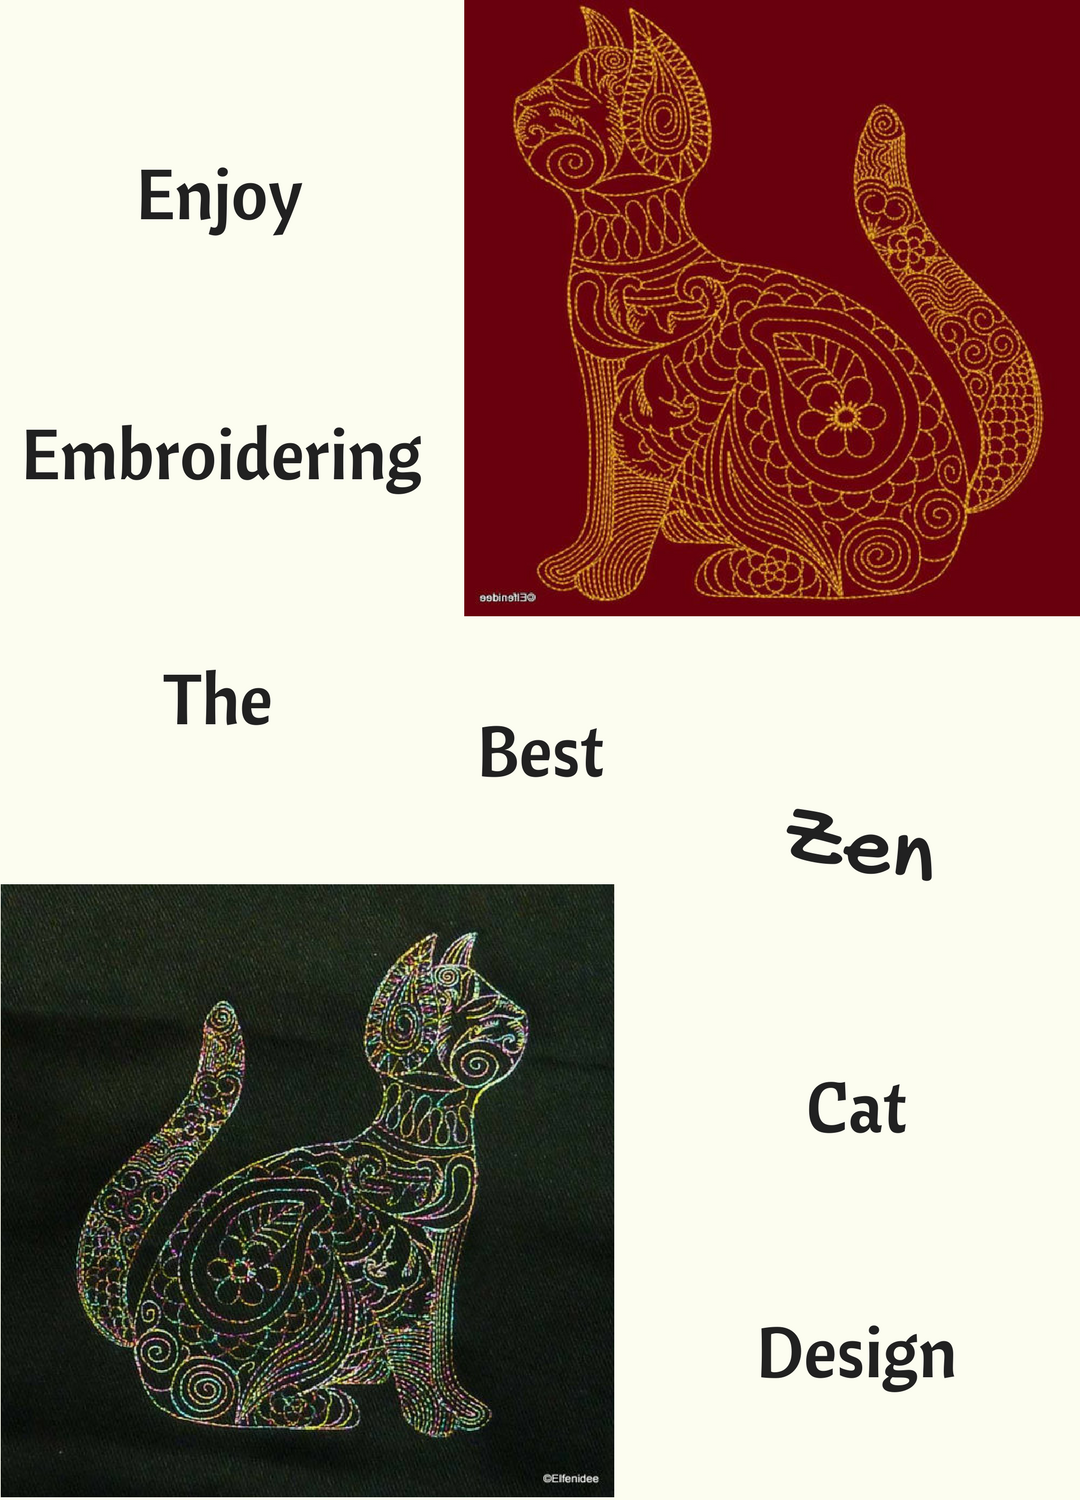 I love this cat designed in the zen embroidery style it reminds me